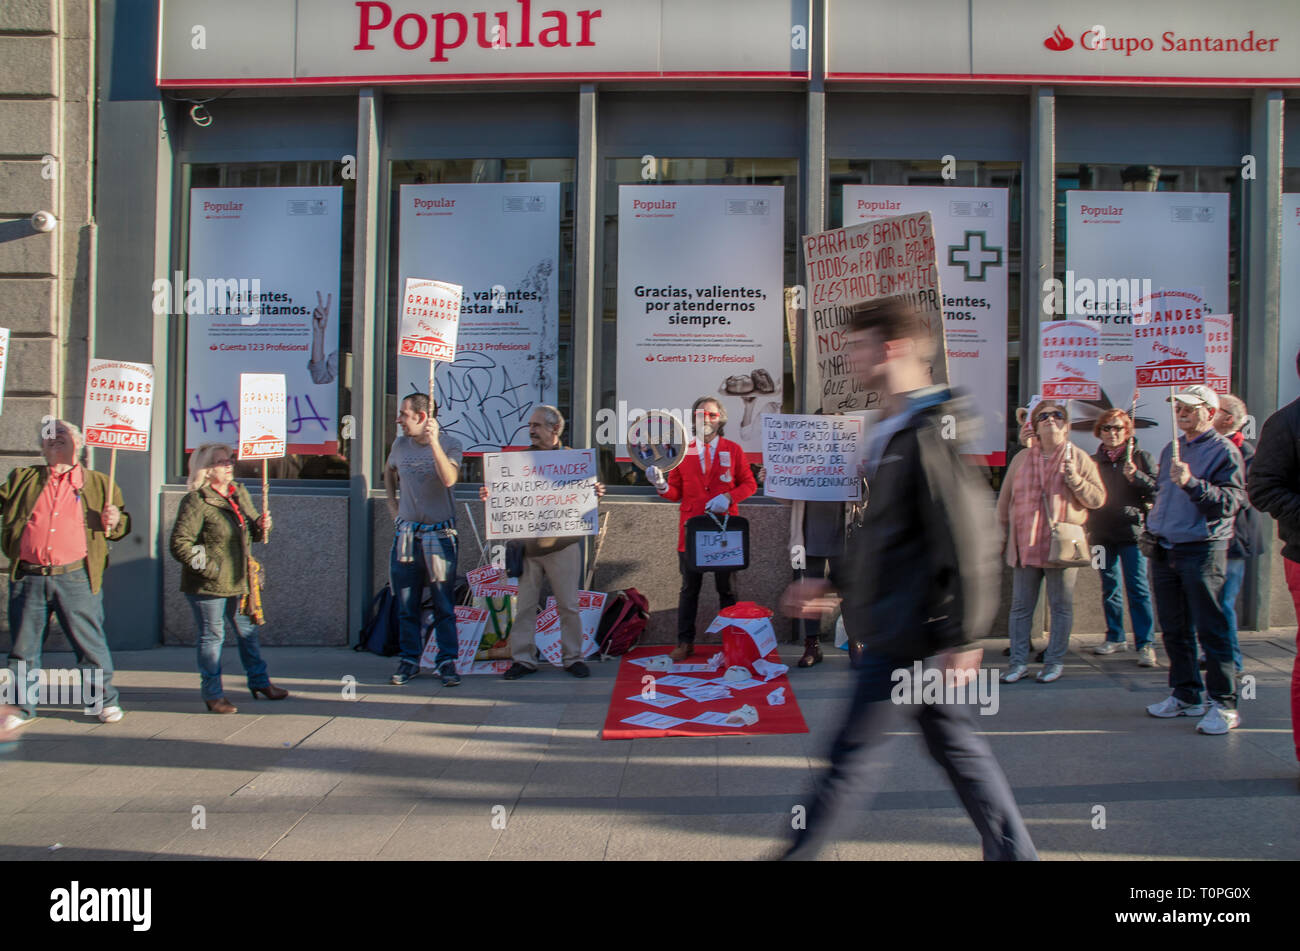 """Madrid, Spain. 21st Mar 2019. Scammed shareholders protested in front of the bank """"Banco Popular"""" part of Santander Group in Madrid. Some 300 000 shareholdres have been left with no money in their accounts.  In the picture, people protesting with placards in font of the bank. Credit: Lora Grigorova/Alamy Live News - Stock Image"""